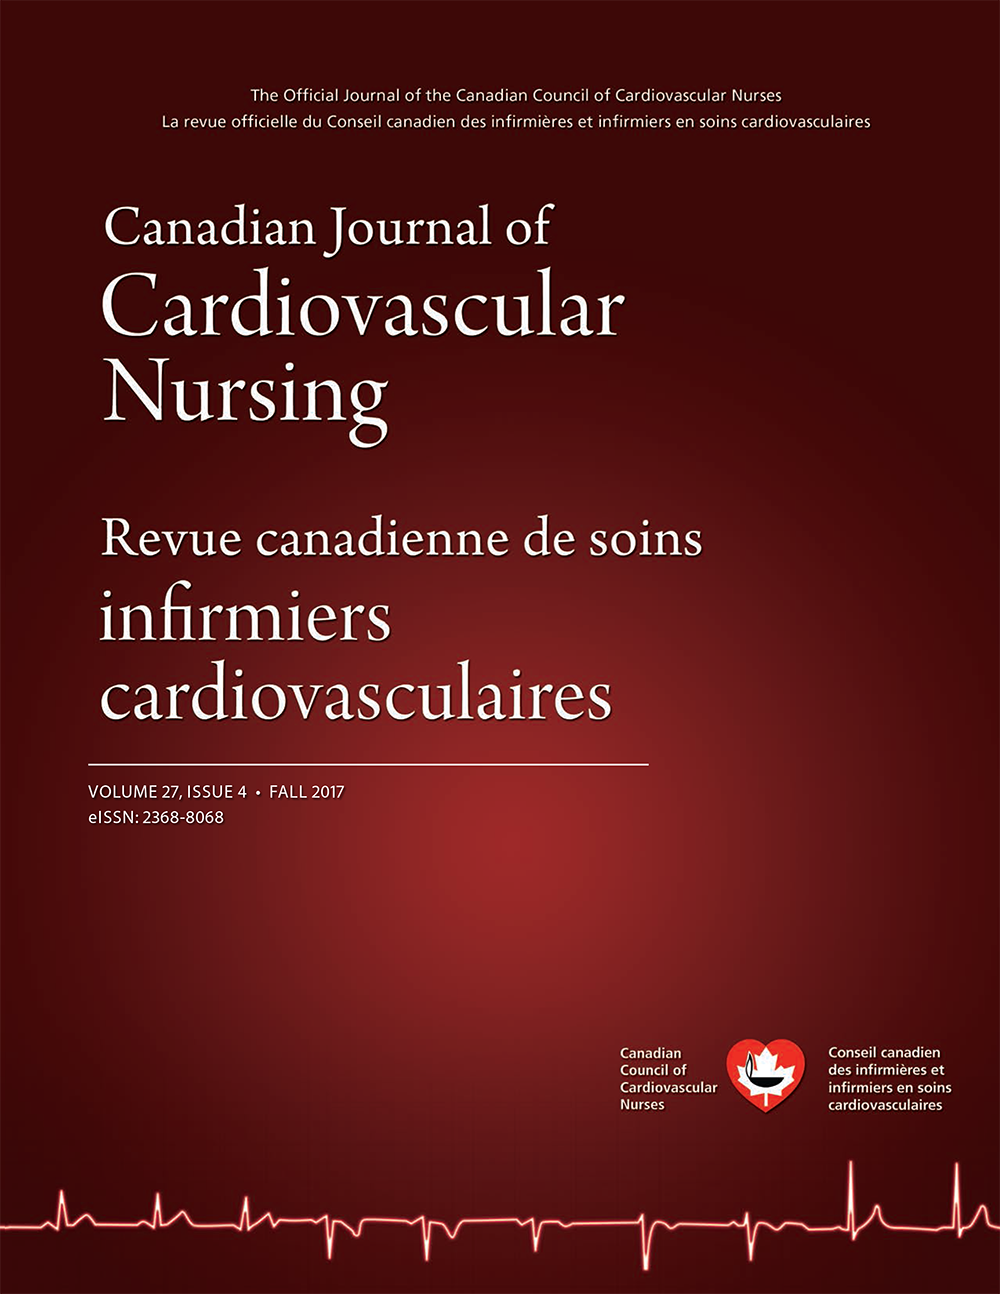 CJCN cover